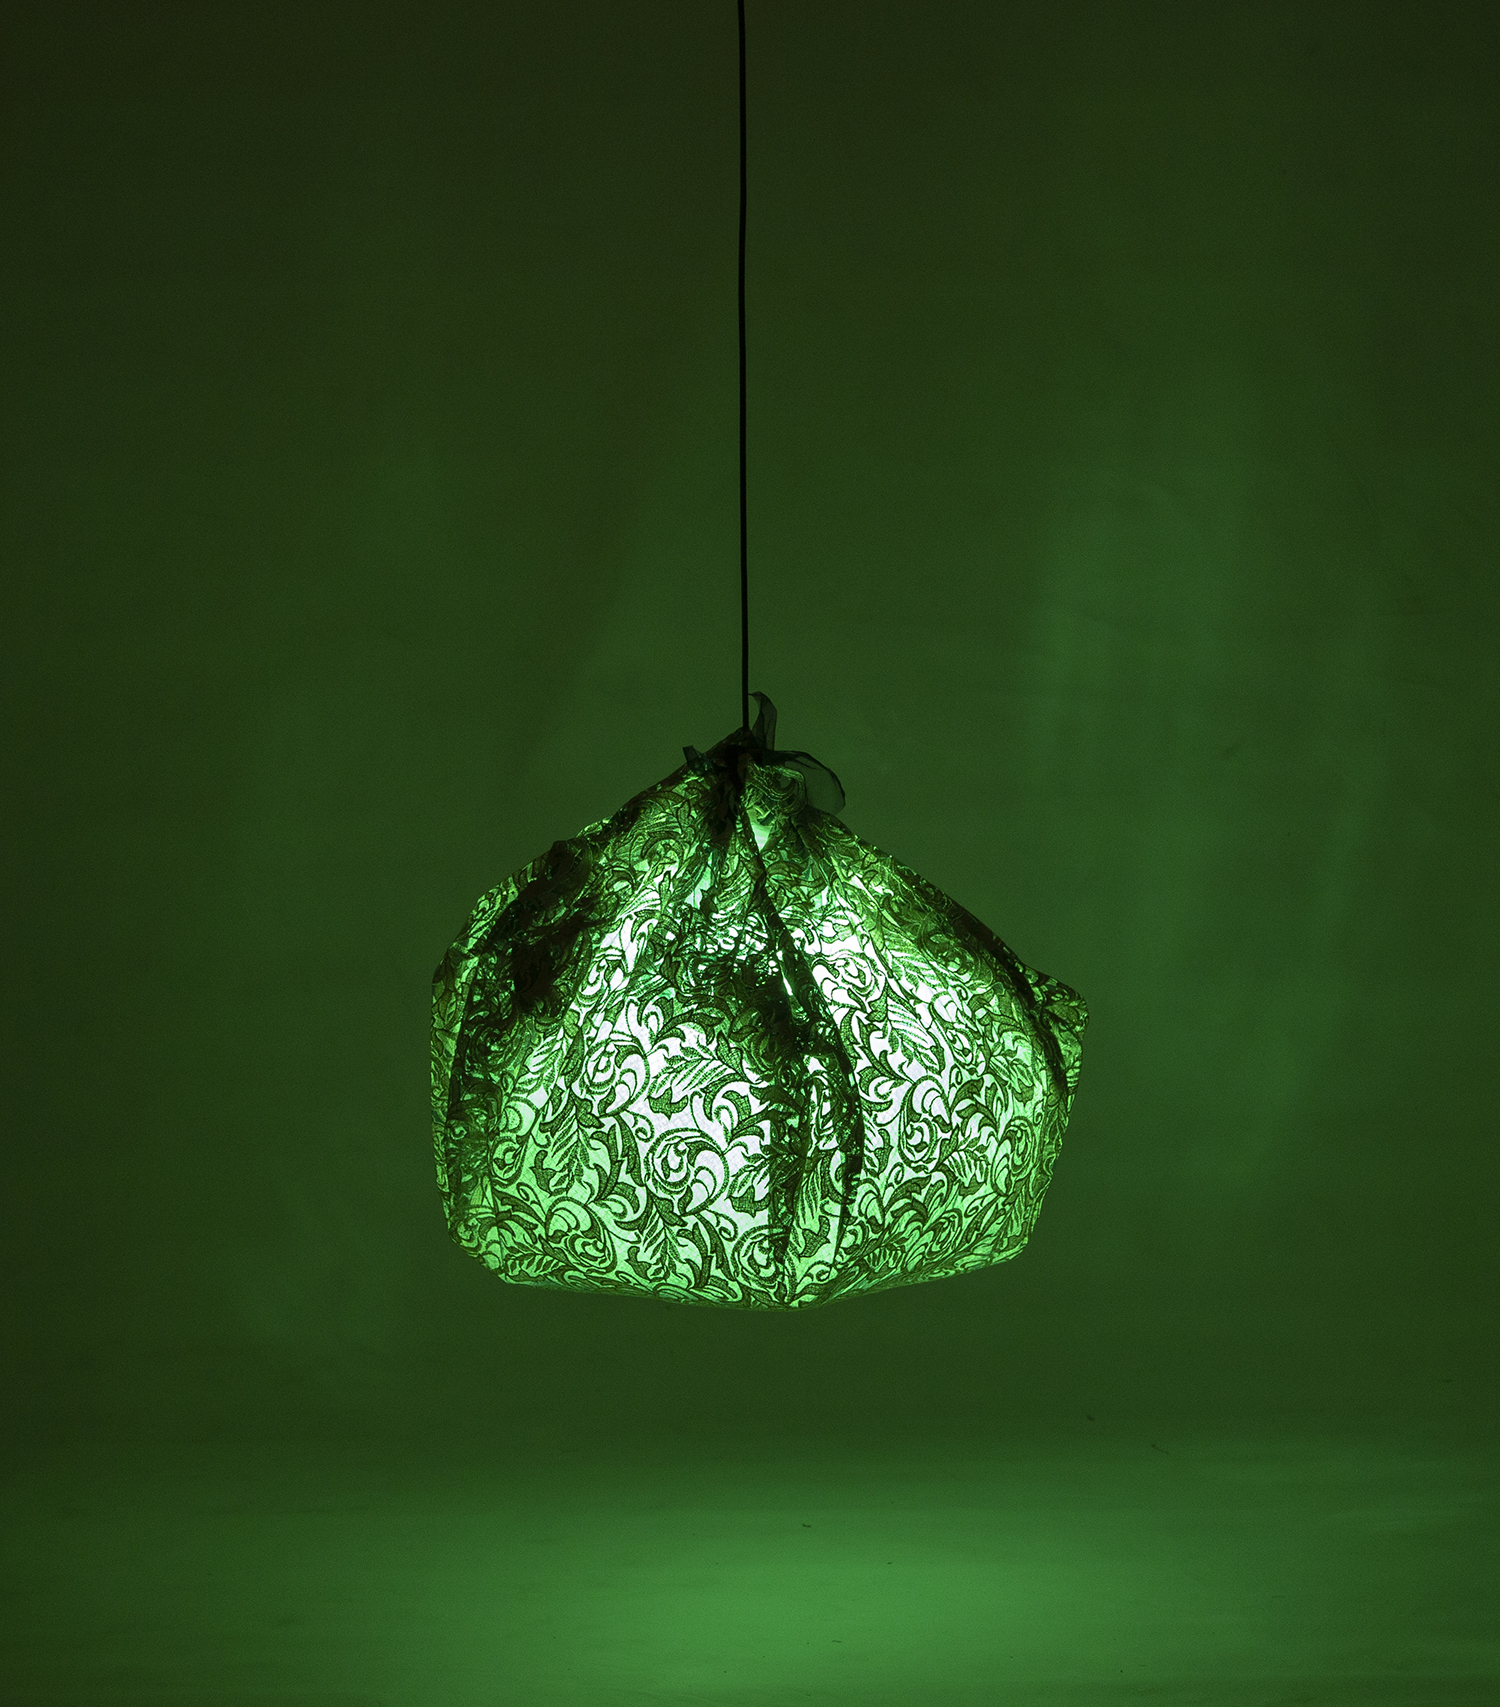 Image of a hanging lamp wrapped in green fabric and casting a green light